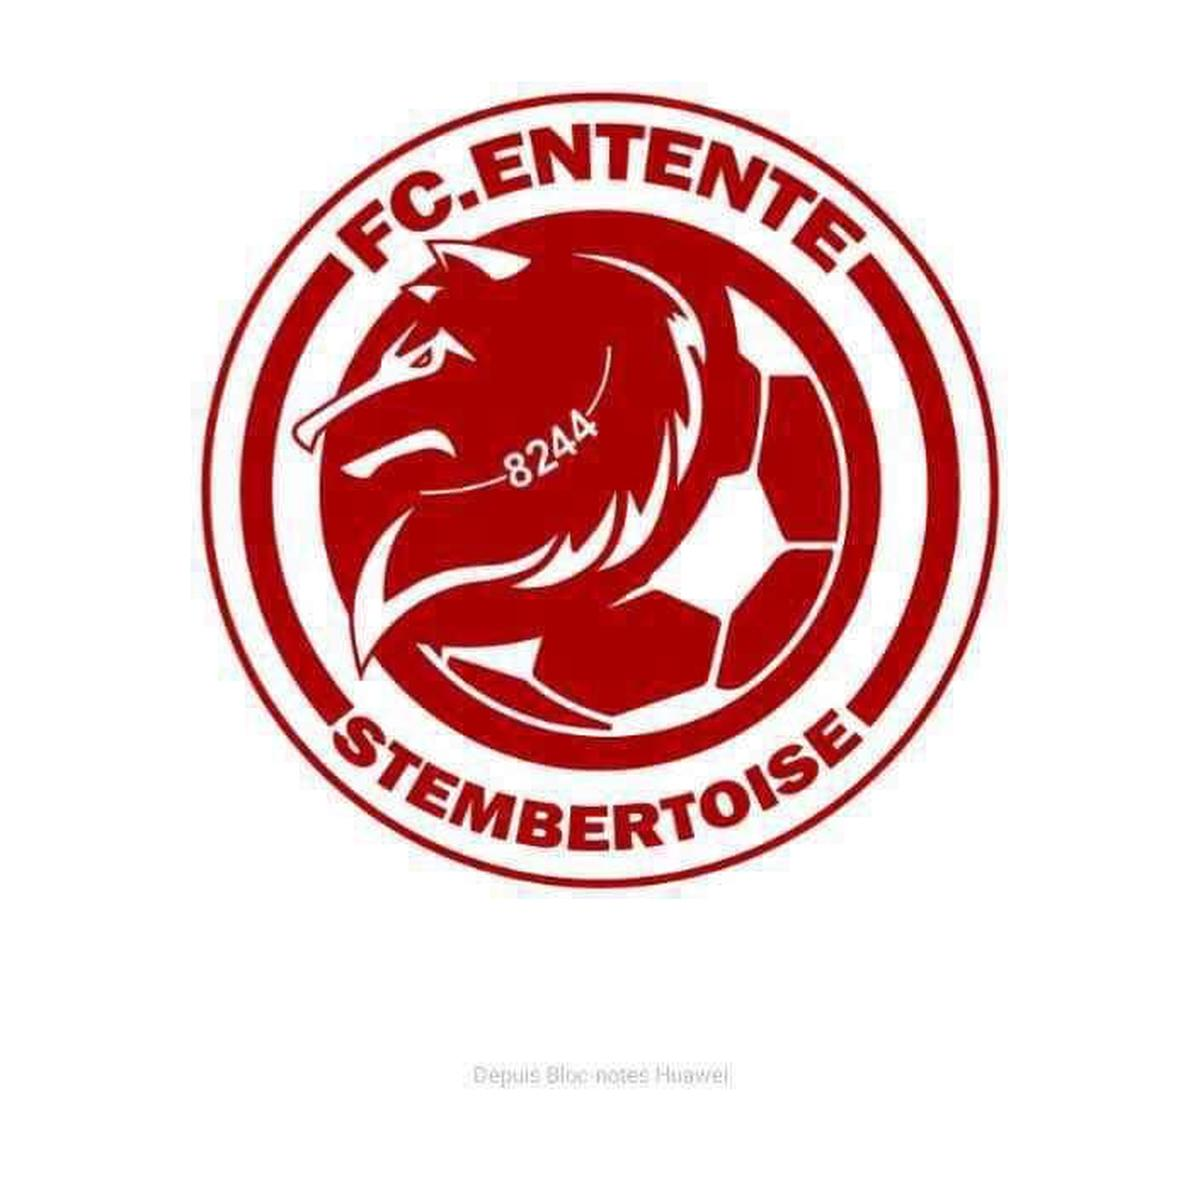 logo du club Football Club Entente Stembertoise